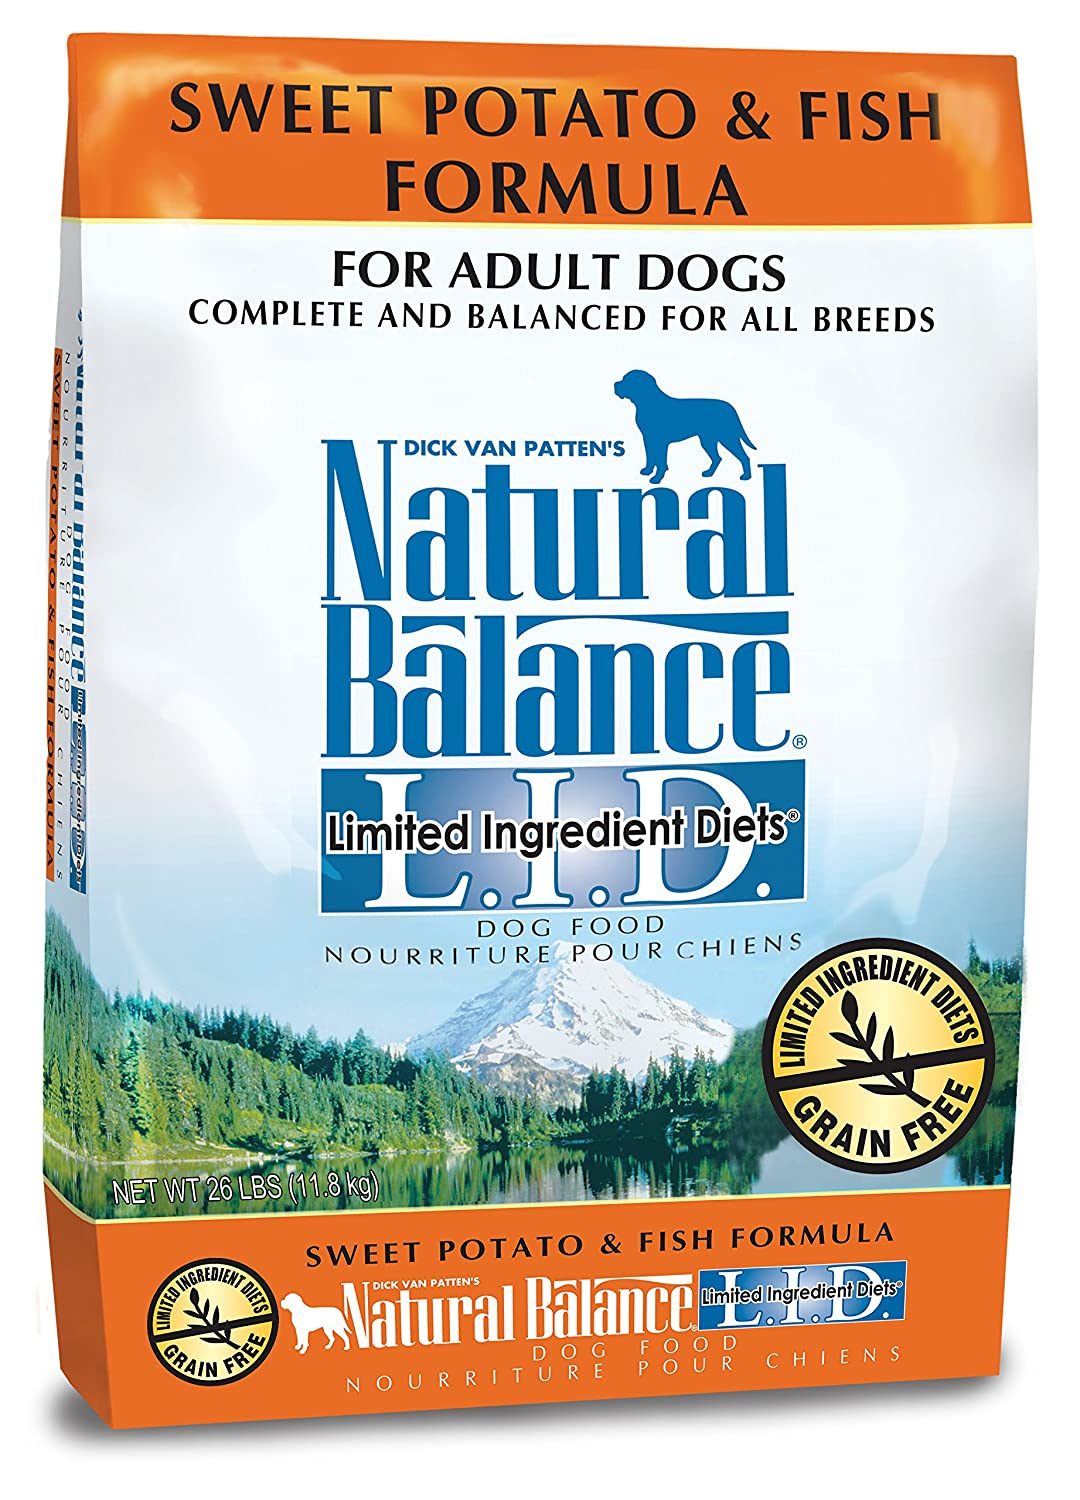 Natural Balance Limited Ingredient Diet (LID) Dry Dog Food